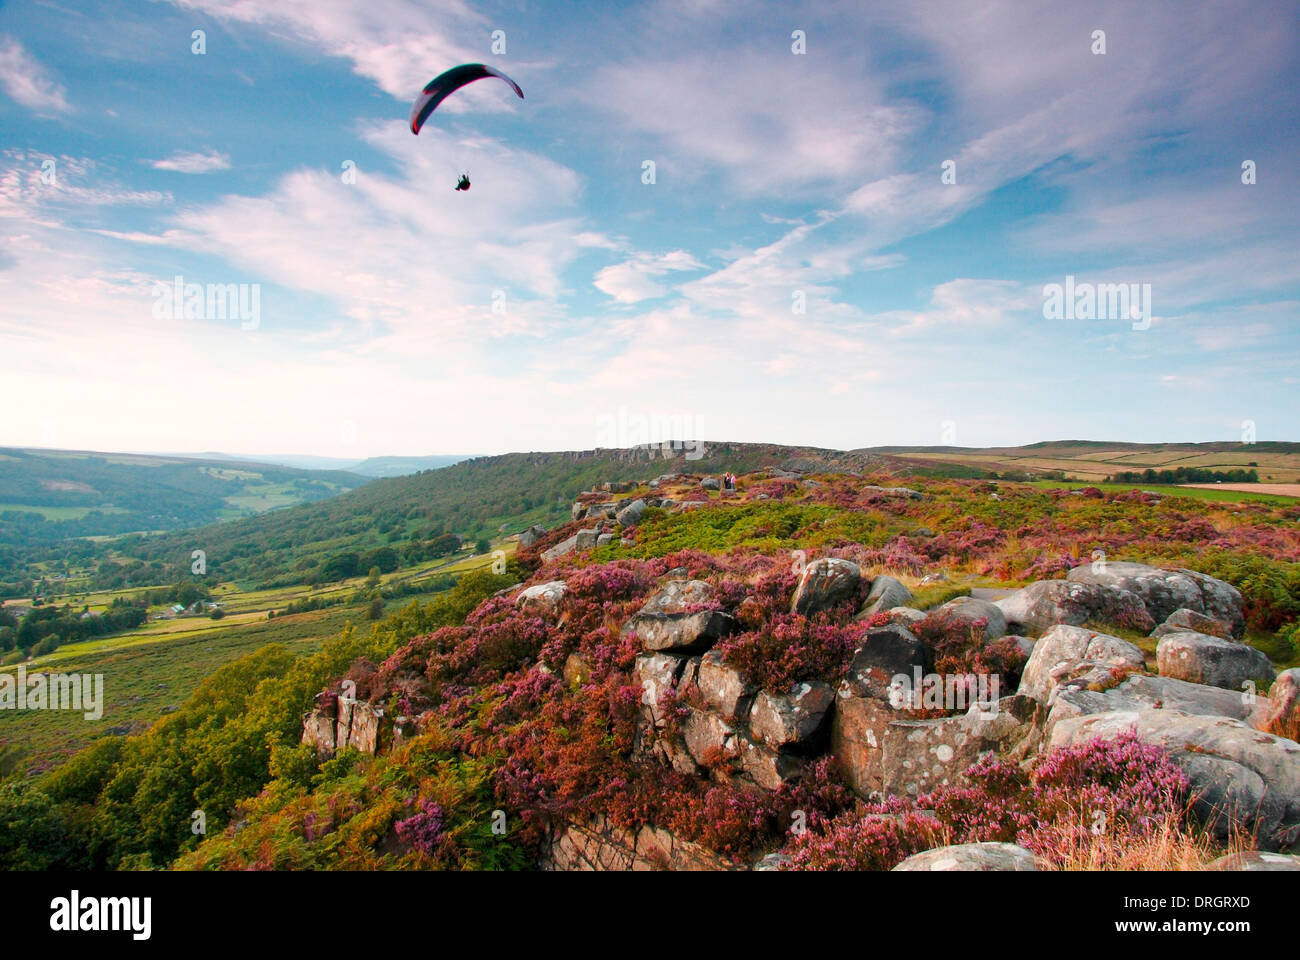 Paraglider over a heather-clad Curbar Edge, in the Dark Peak area of the Peak District National Park, Derbyshire, UK - Stock Image